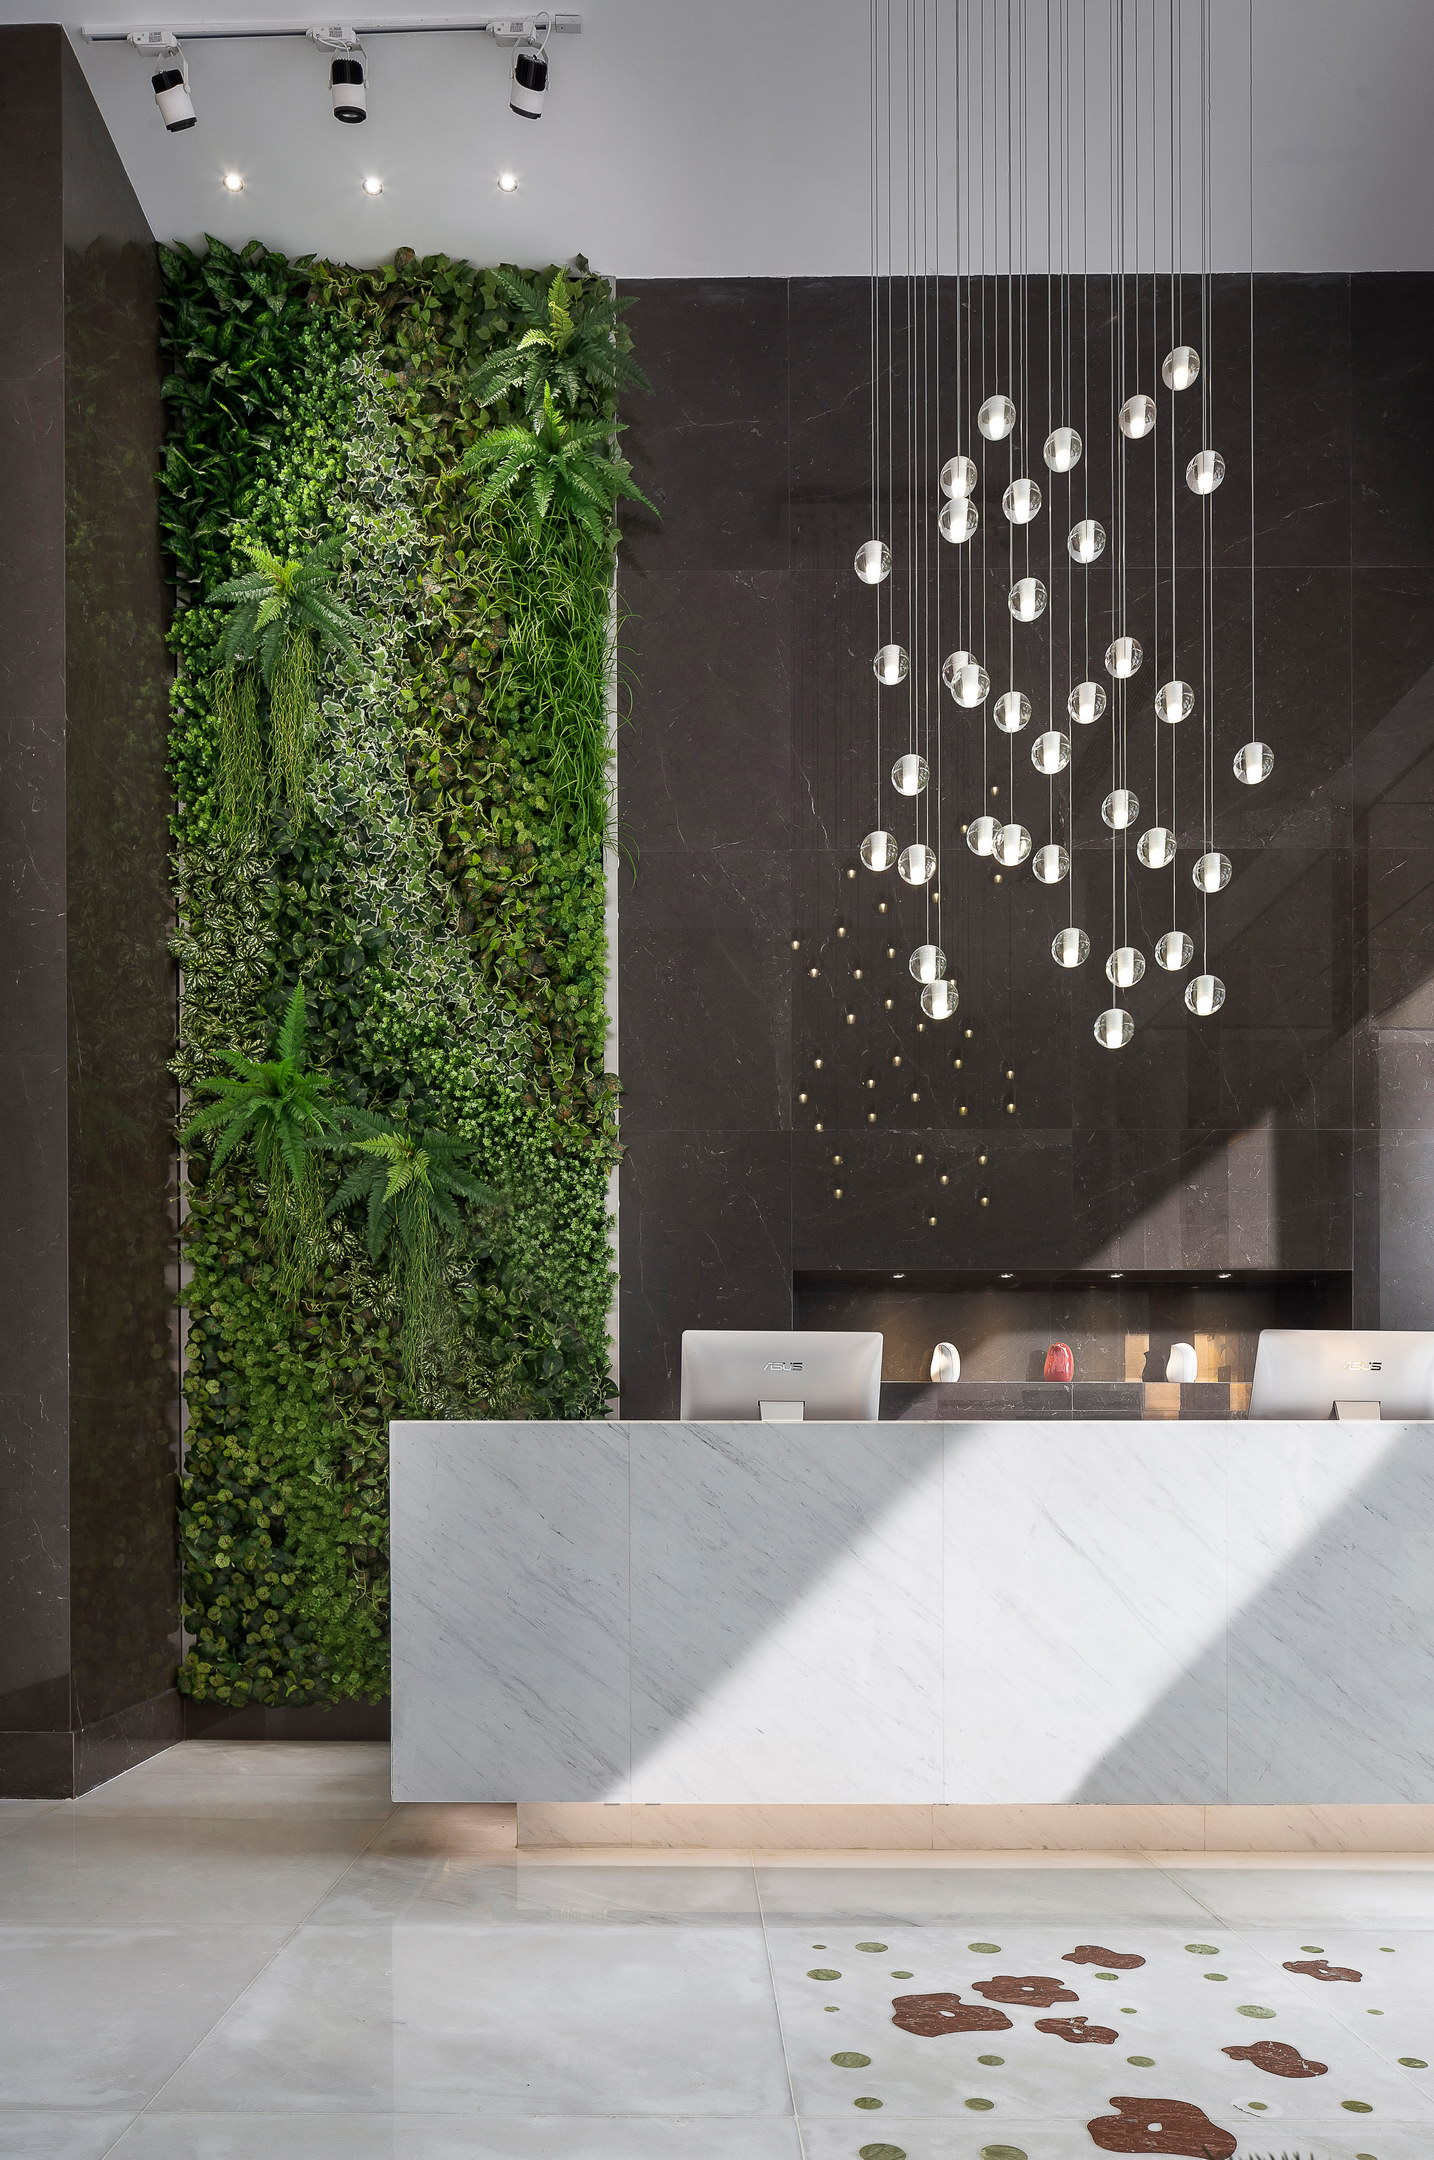 A green wall is set in a dialogue with the marble flowers on the floor